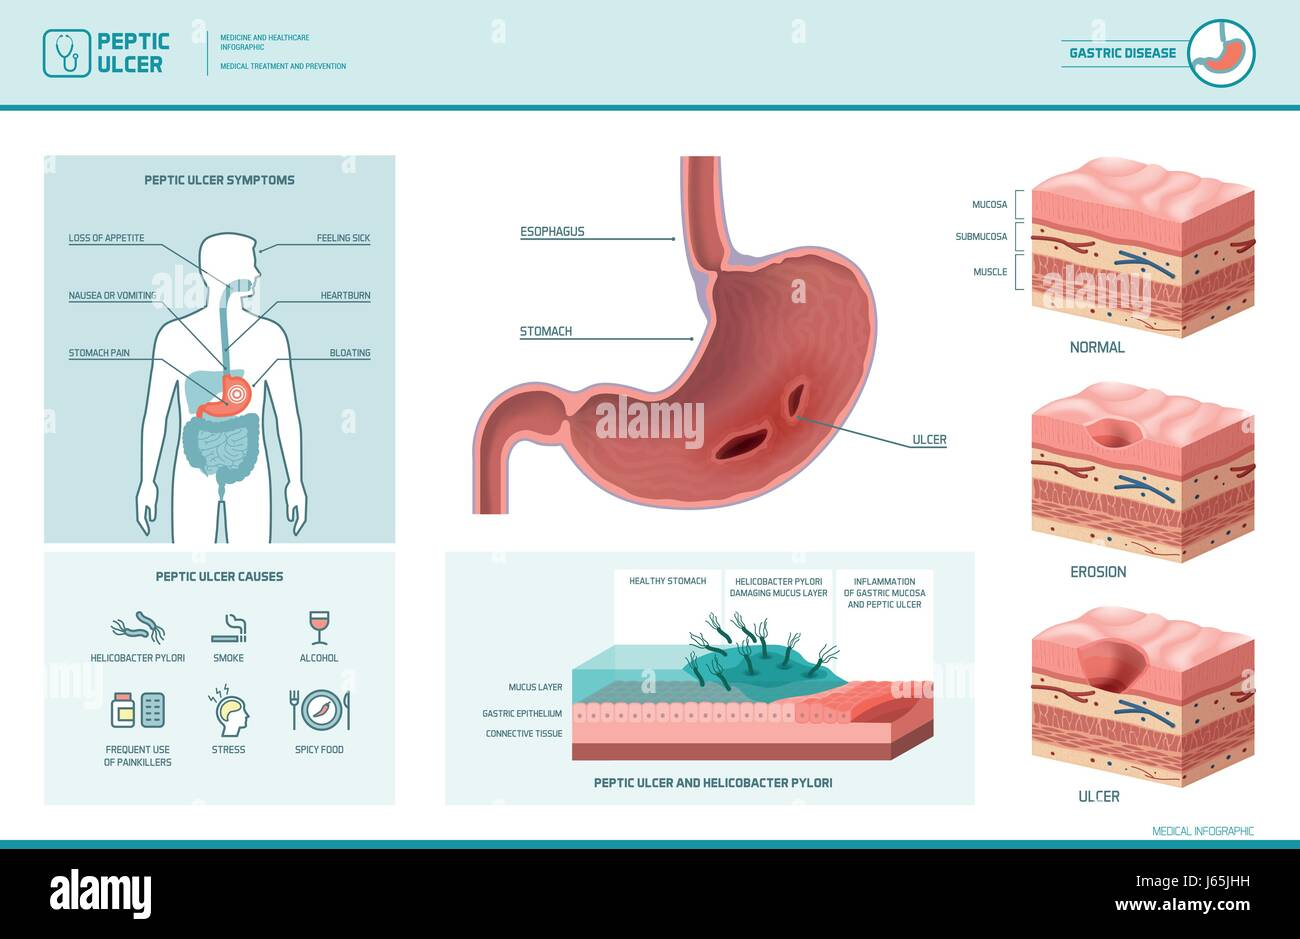 Peptic ulcer and helicobacter pylori infographic with symptoms and peptic ulcer and helicobacter pylori infographic with symptoms and causes stomach cross section diagram medical illustration ccuart Gallery